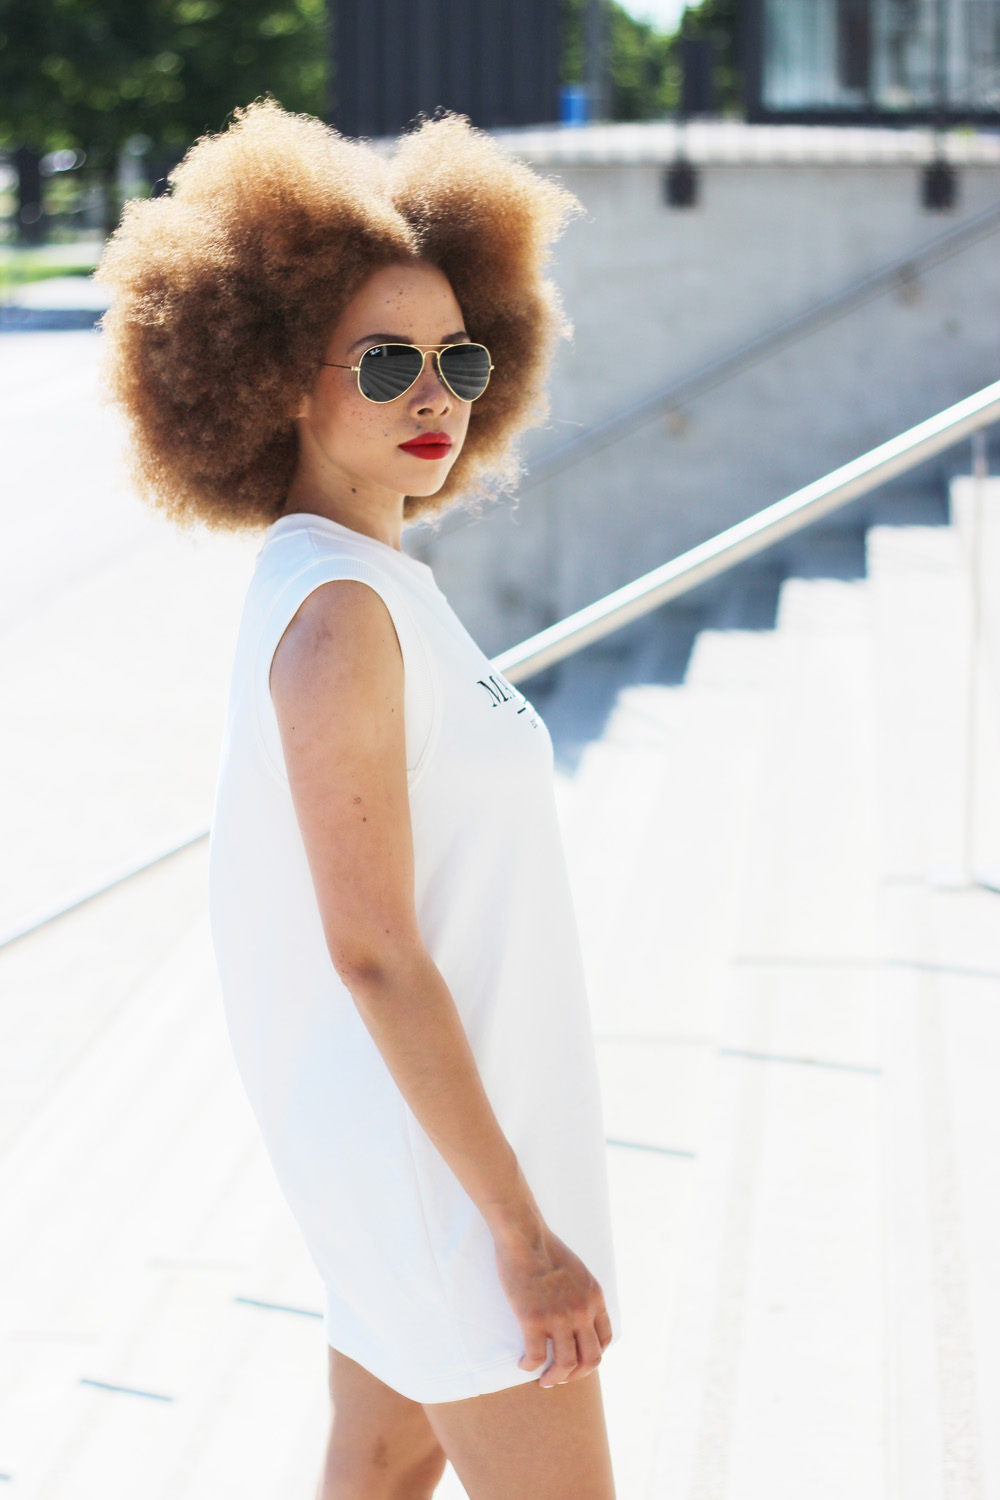 fatimayarie-rayban-sunglasses-sports-dress-naturalhair-img_8198